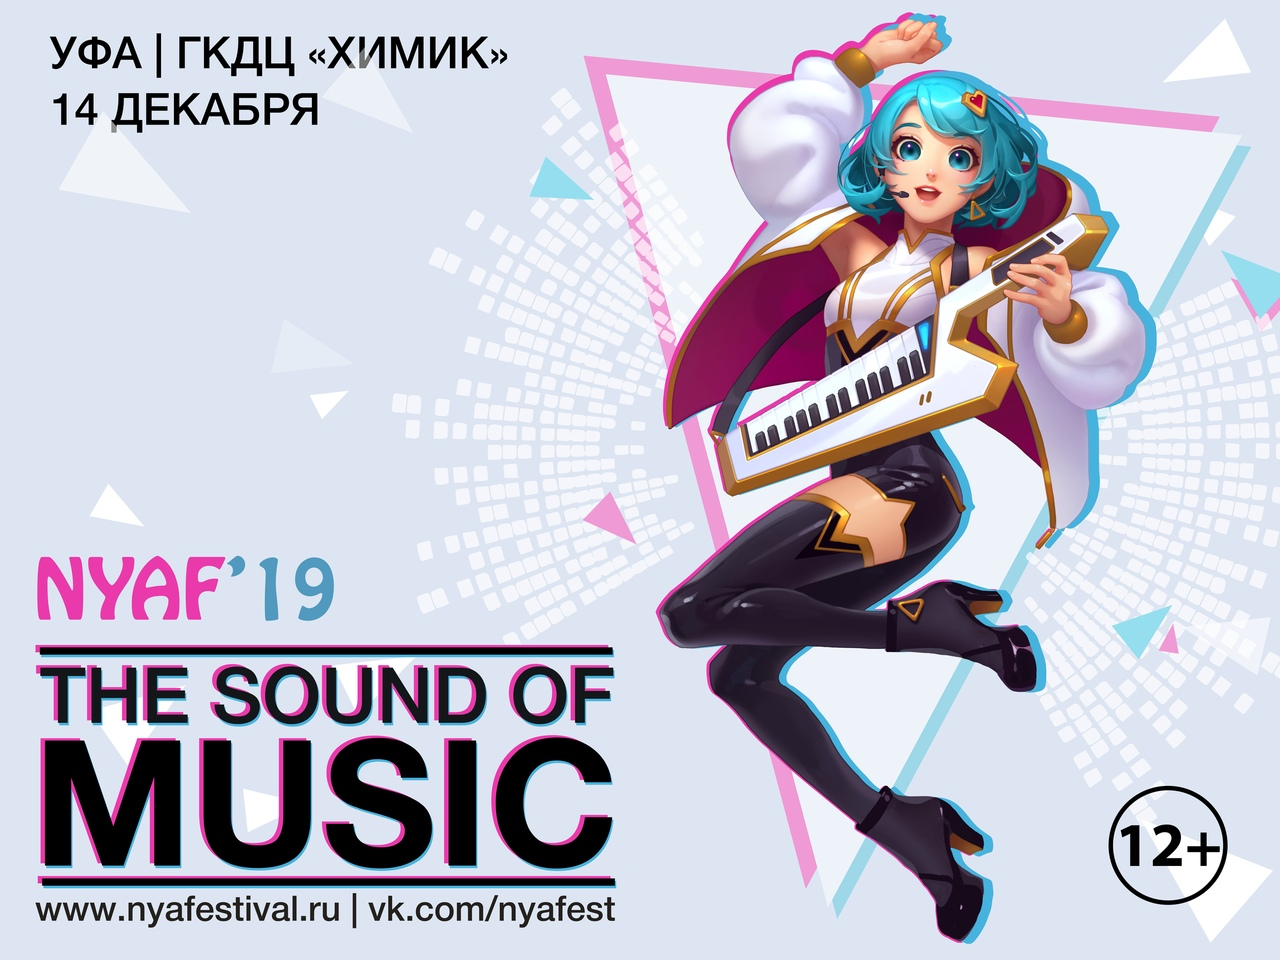 NYAF 2019: The Sound of Music